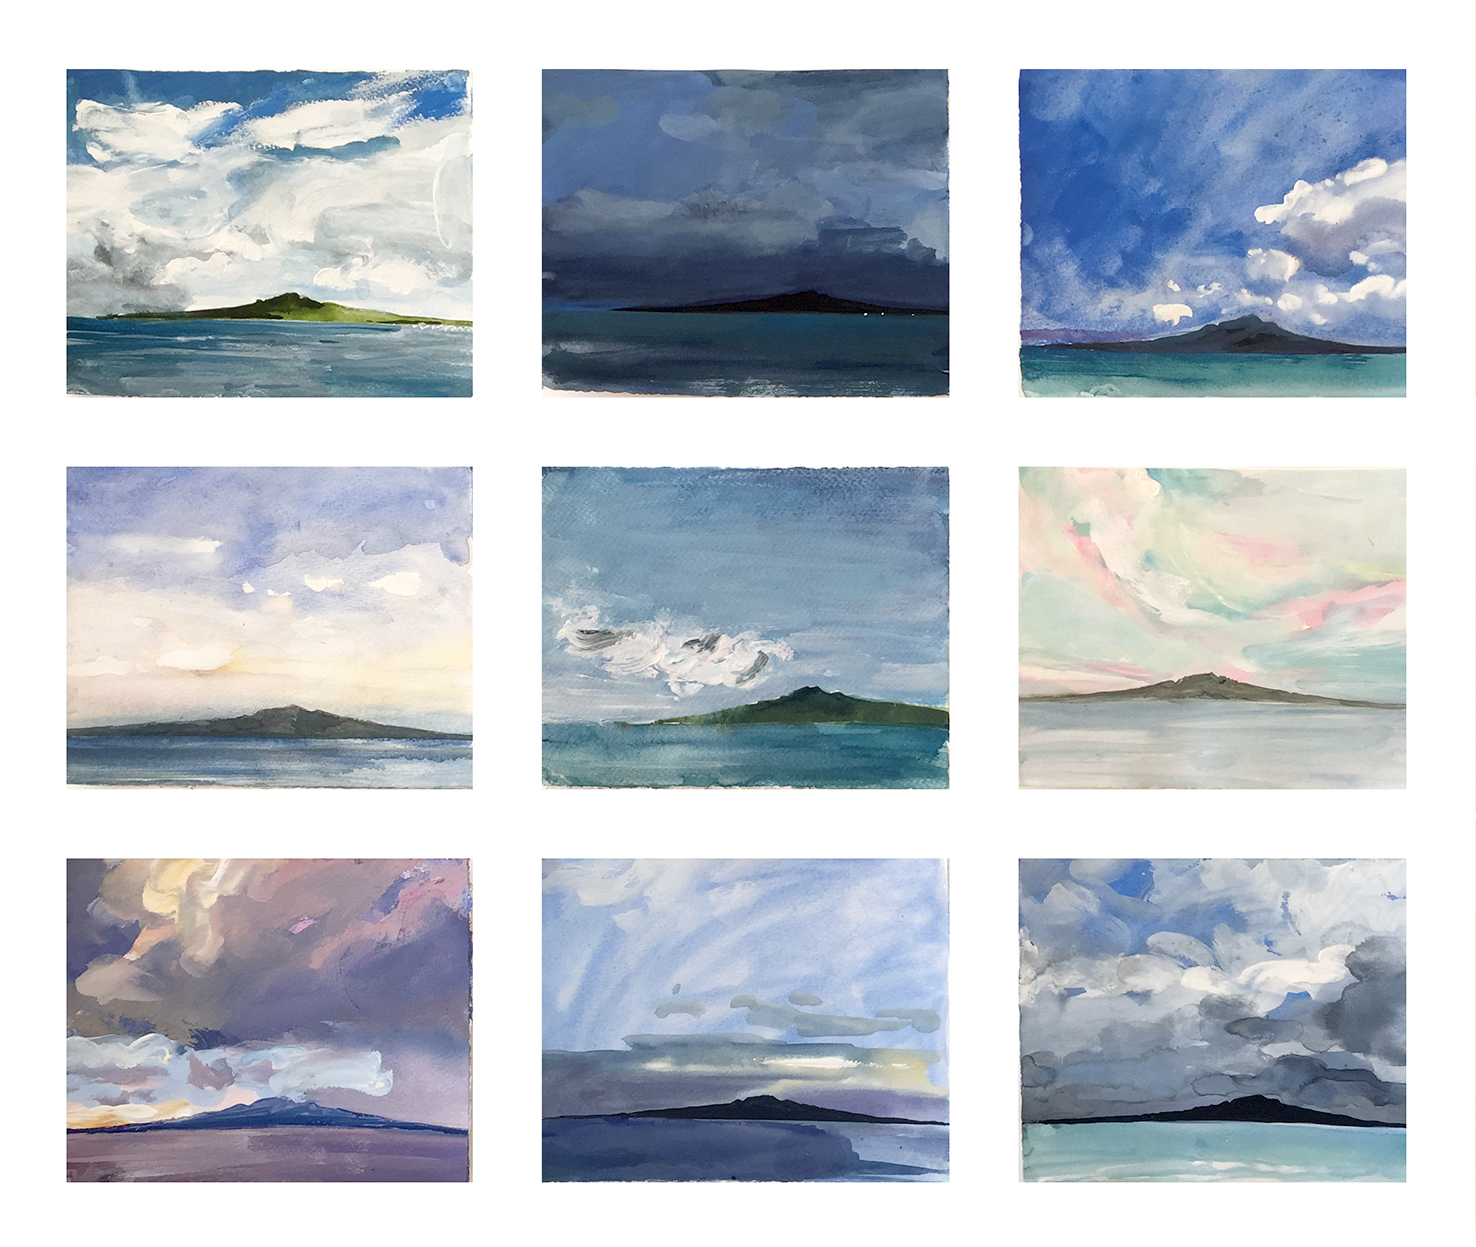 Rangitoto studies of weather and light # 2 framed series of 9 originals